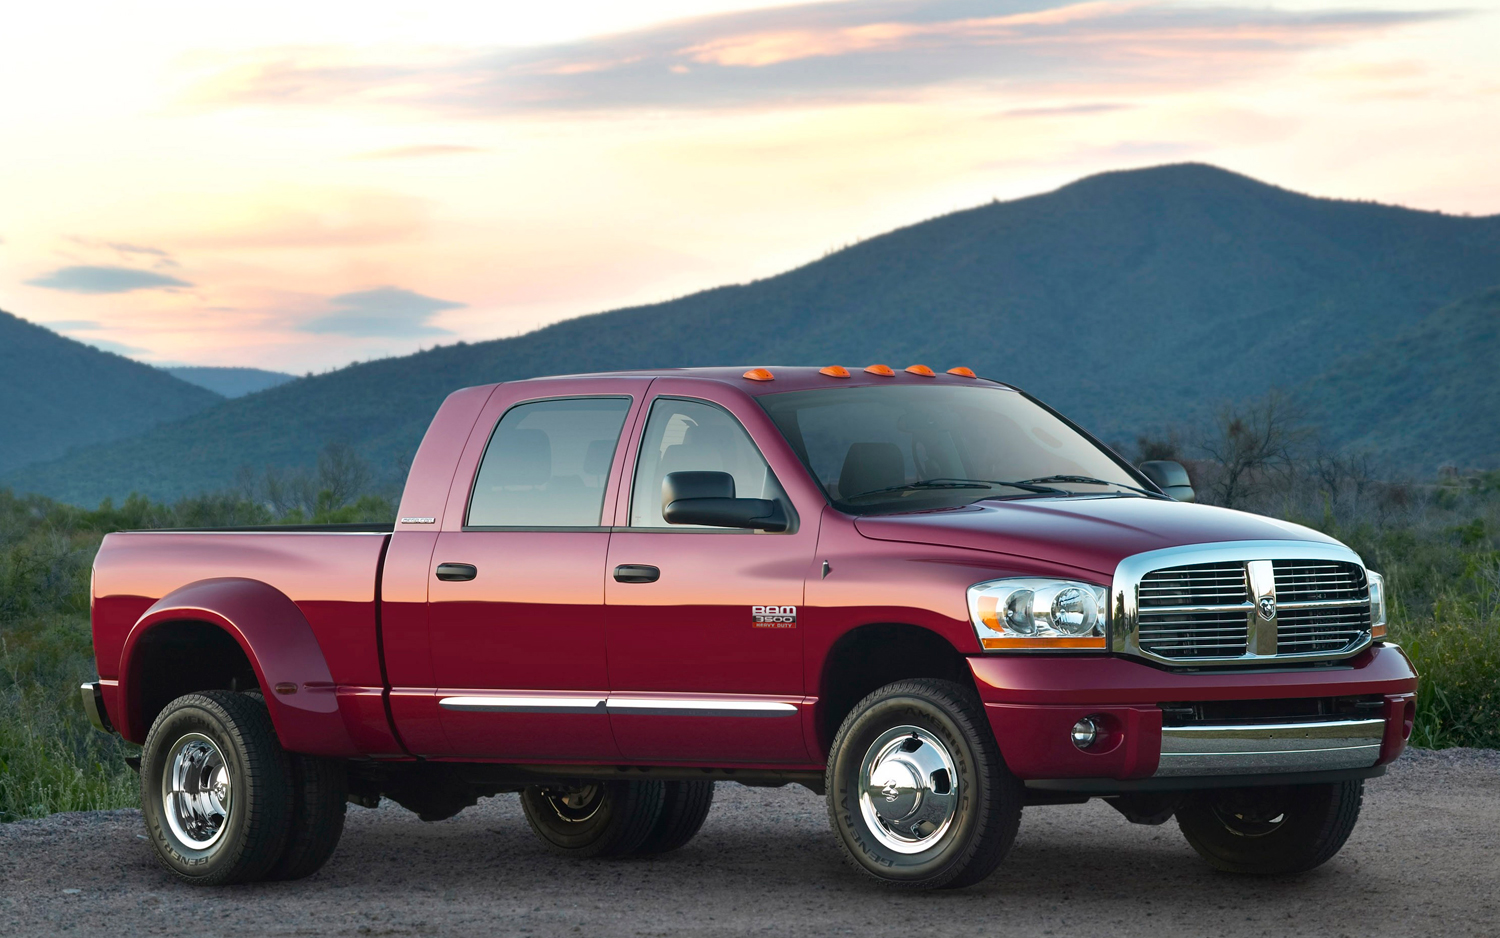 Dodge Mega Cab >> 2009 DODGE RAM PICKUP 3500 - Image #9